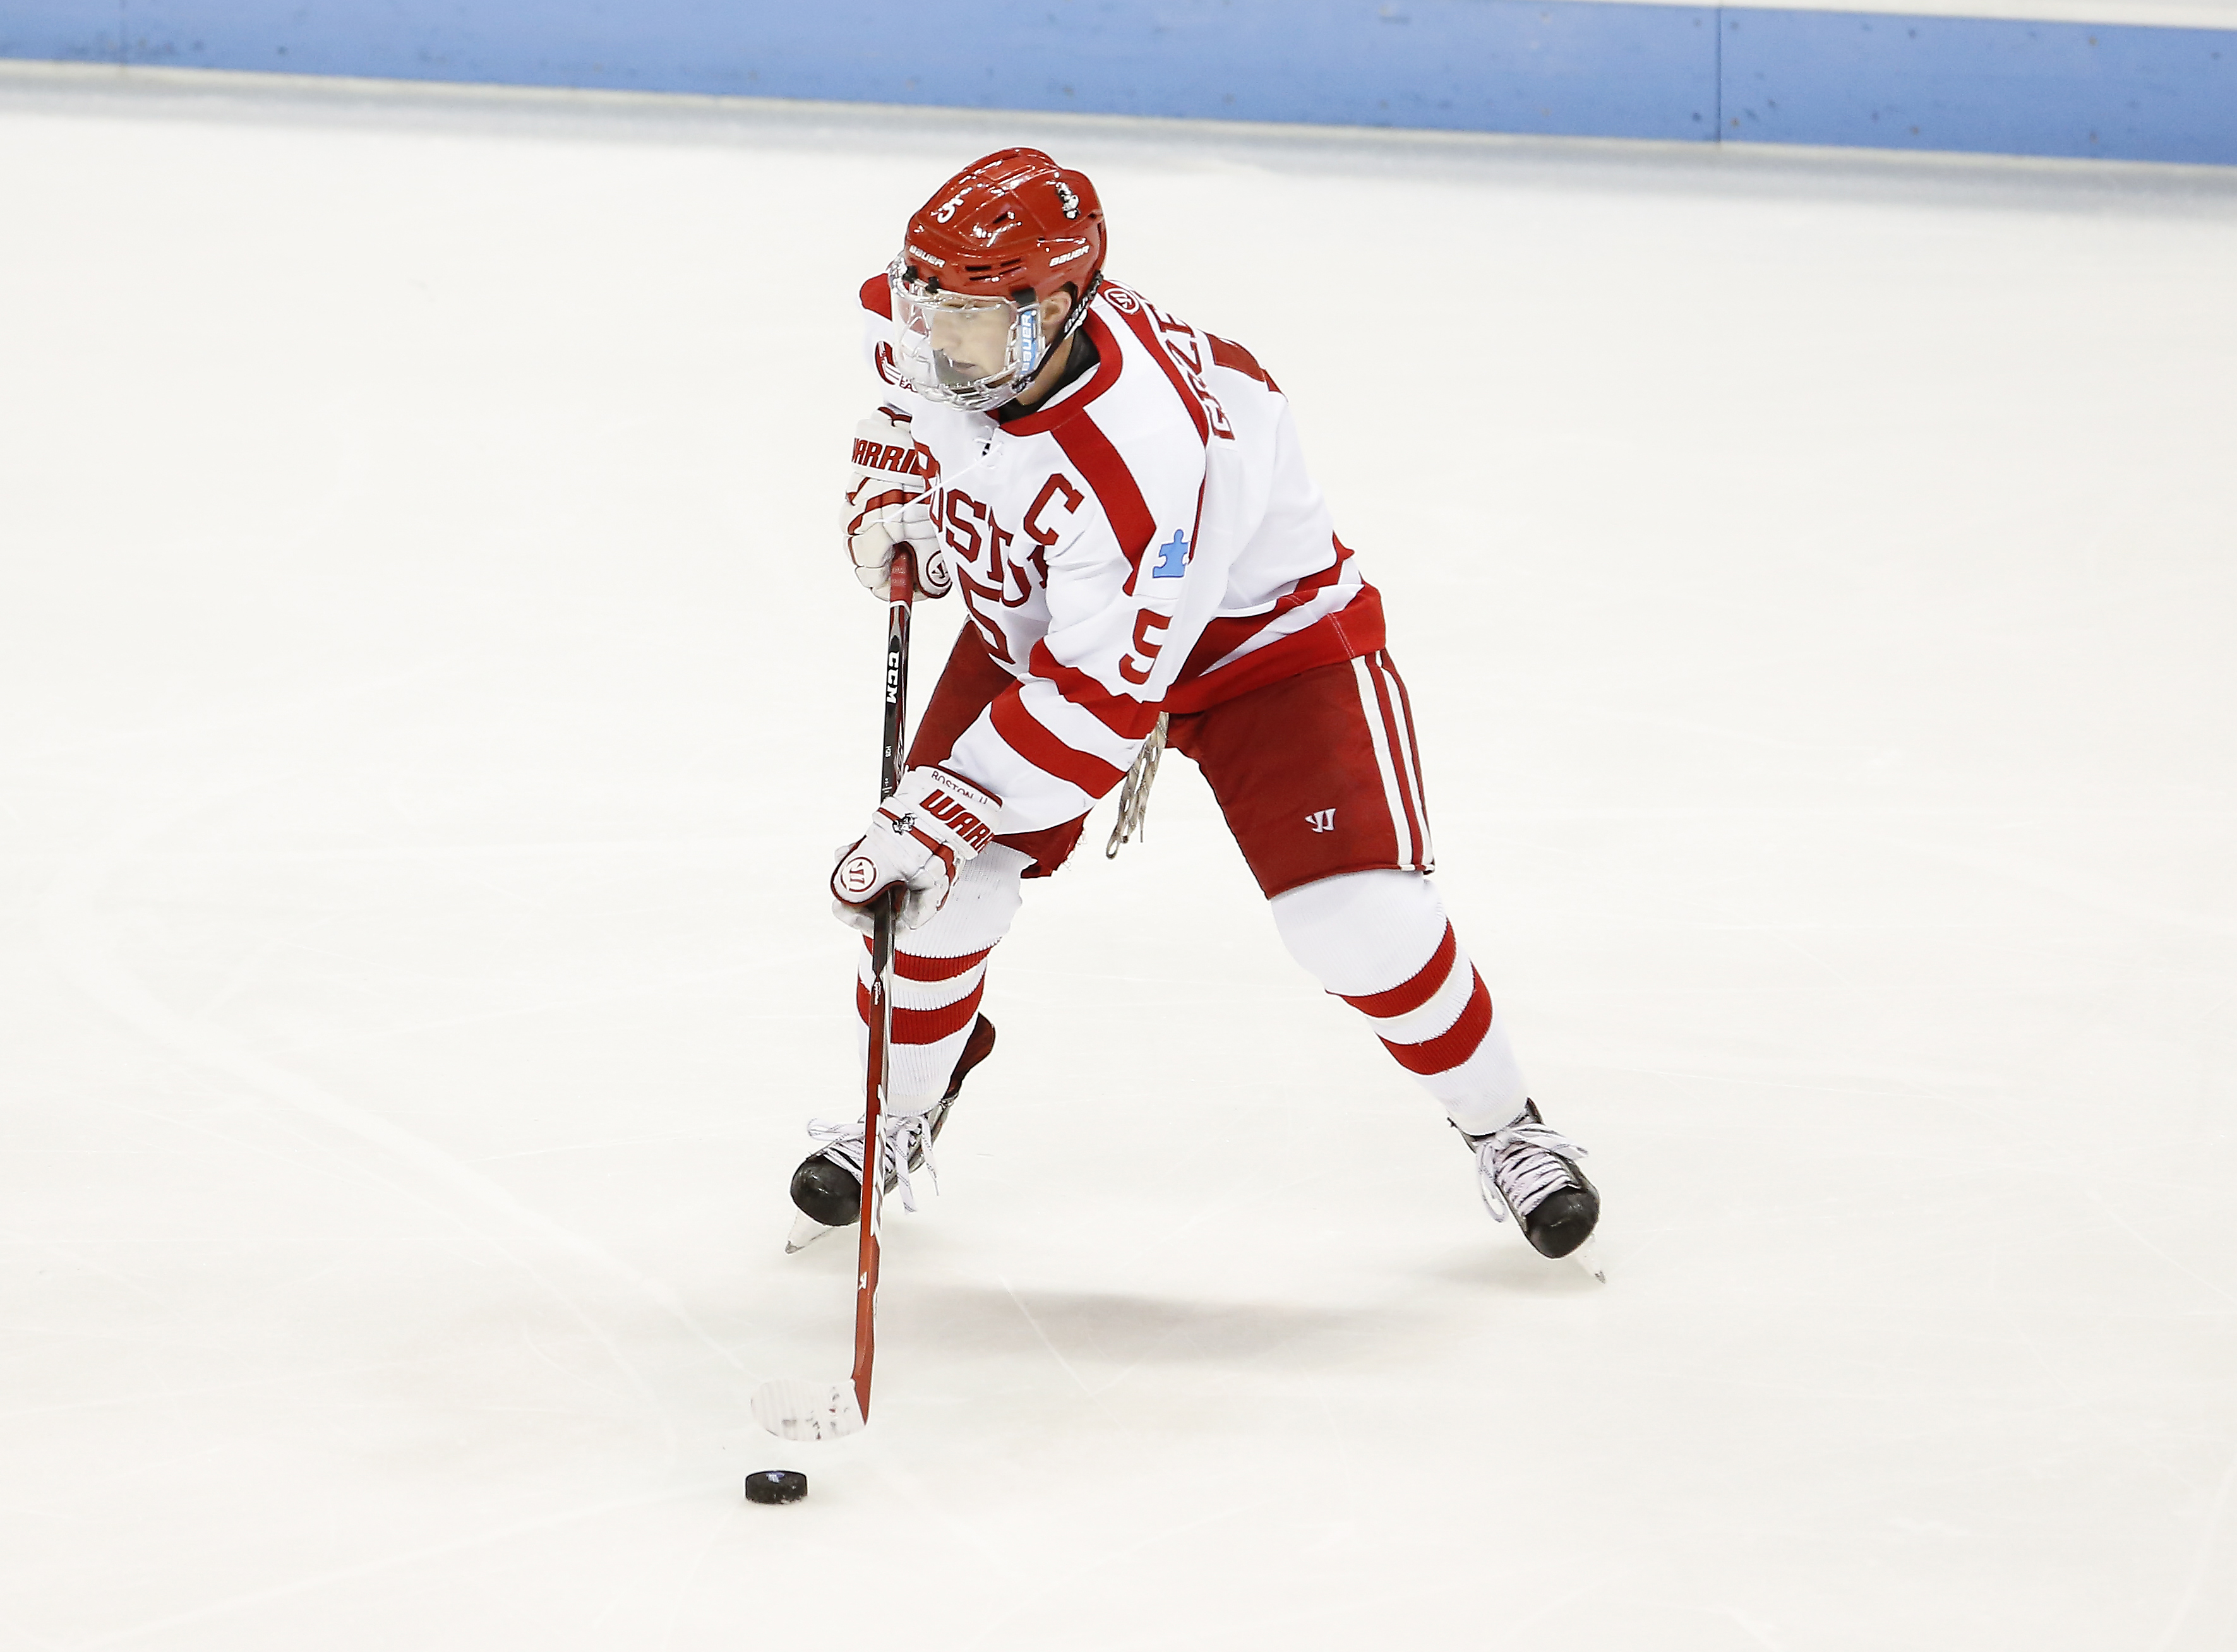 Hockey East: Power Rankings - BU Stays On Top With Lowell Right Behind